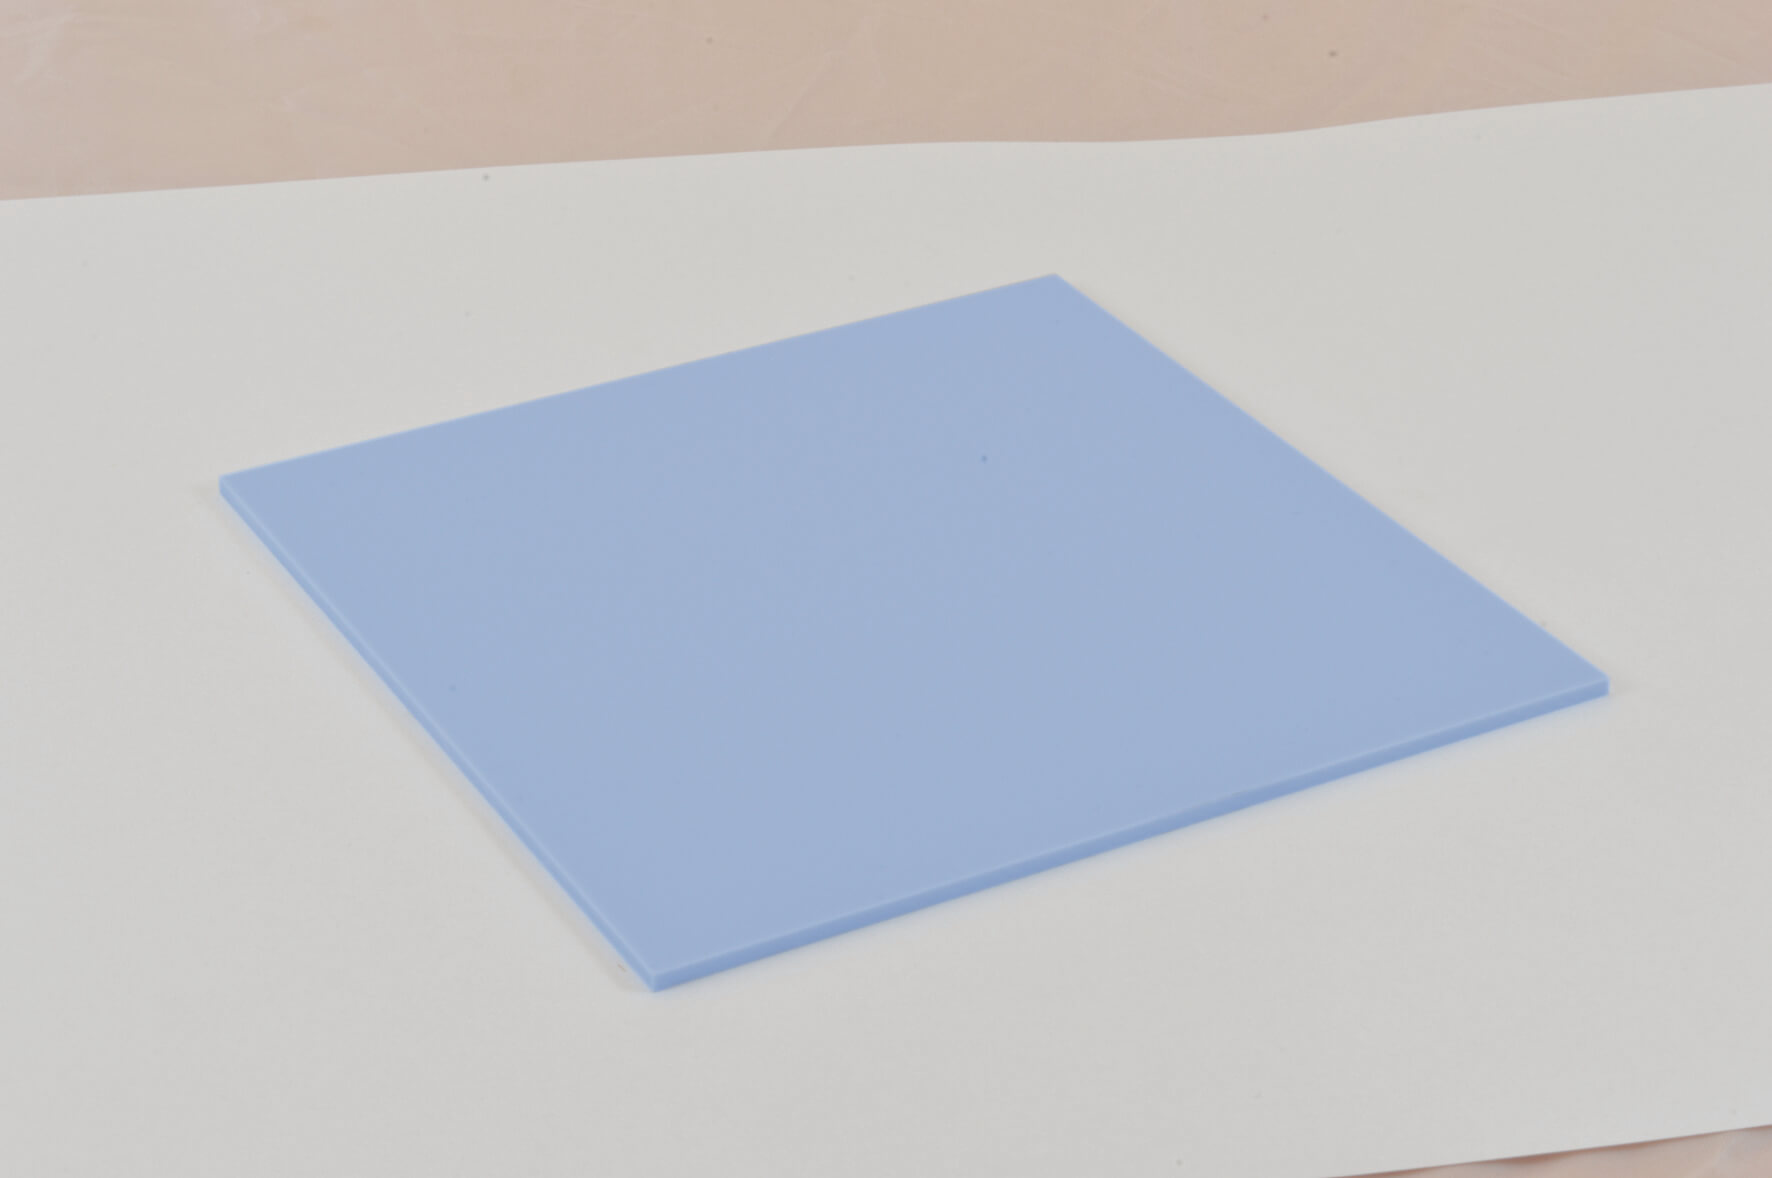 Pastels Cast Acrylic 3mm Sheet - Candy Floss Blue 600 x 400mm